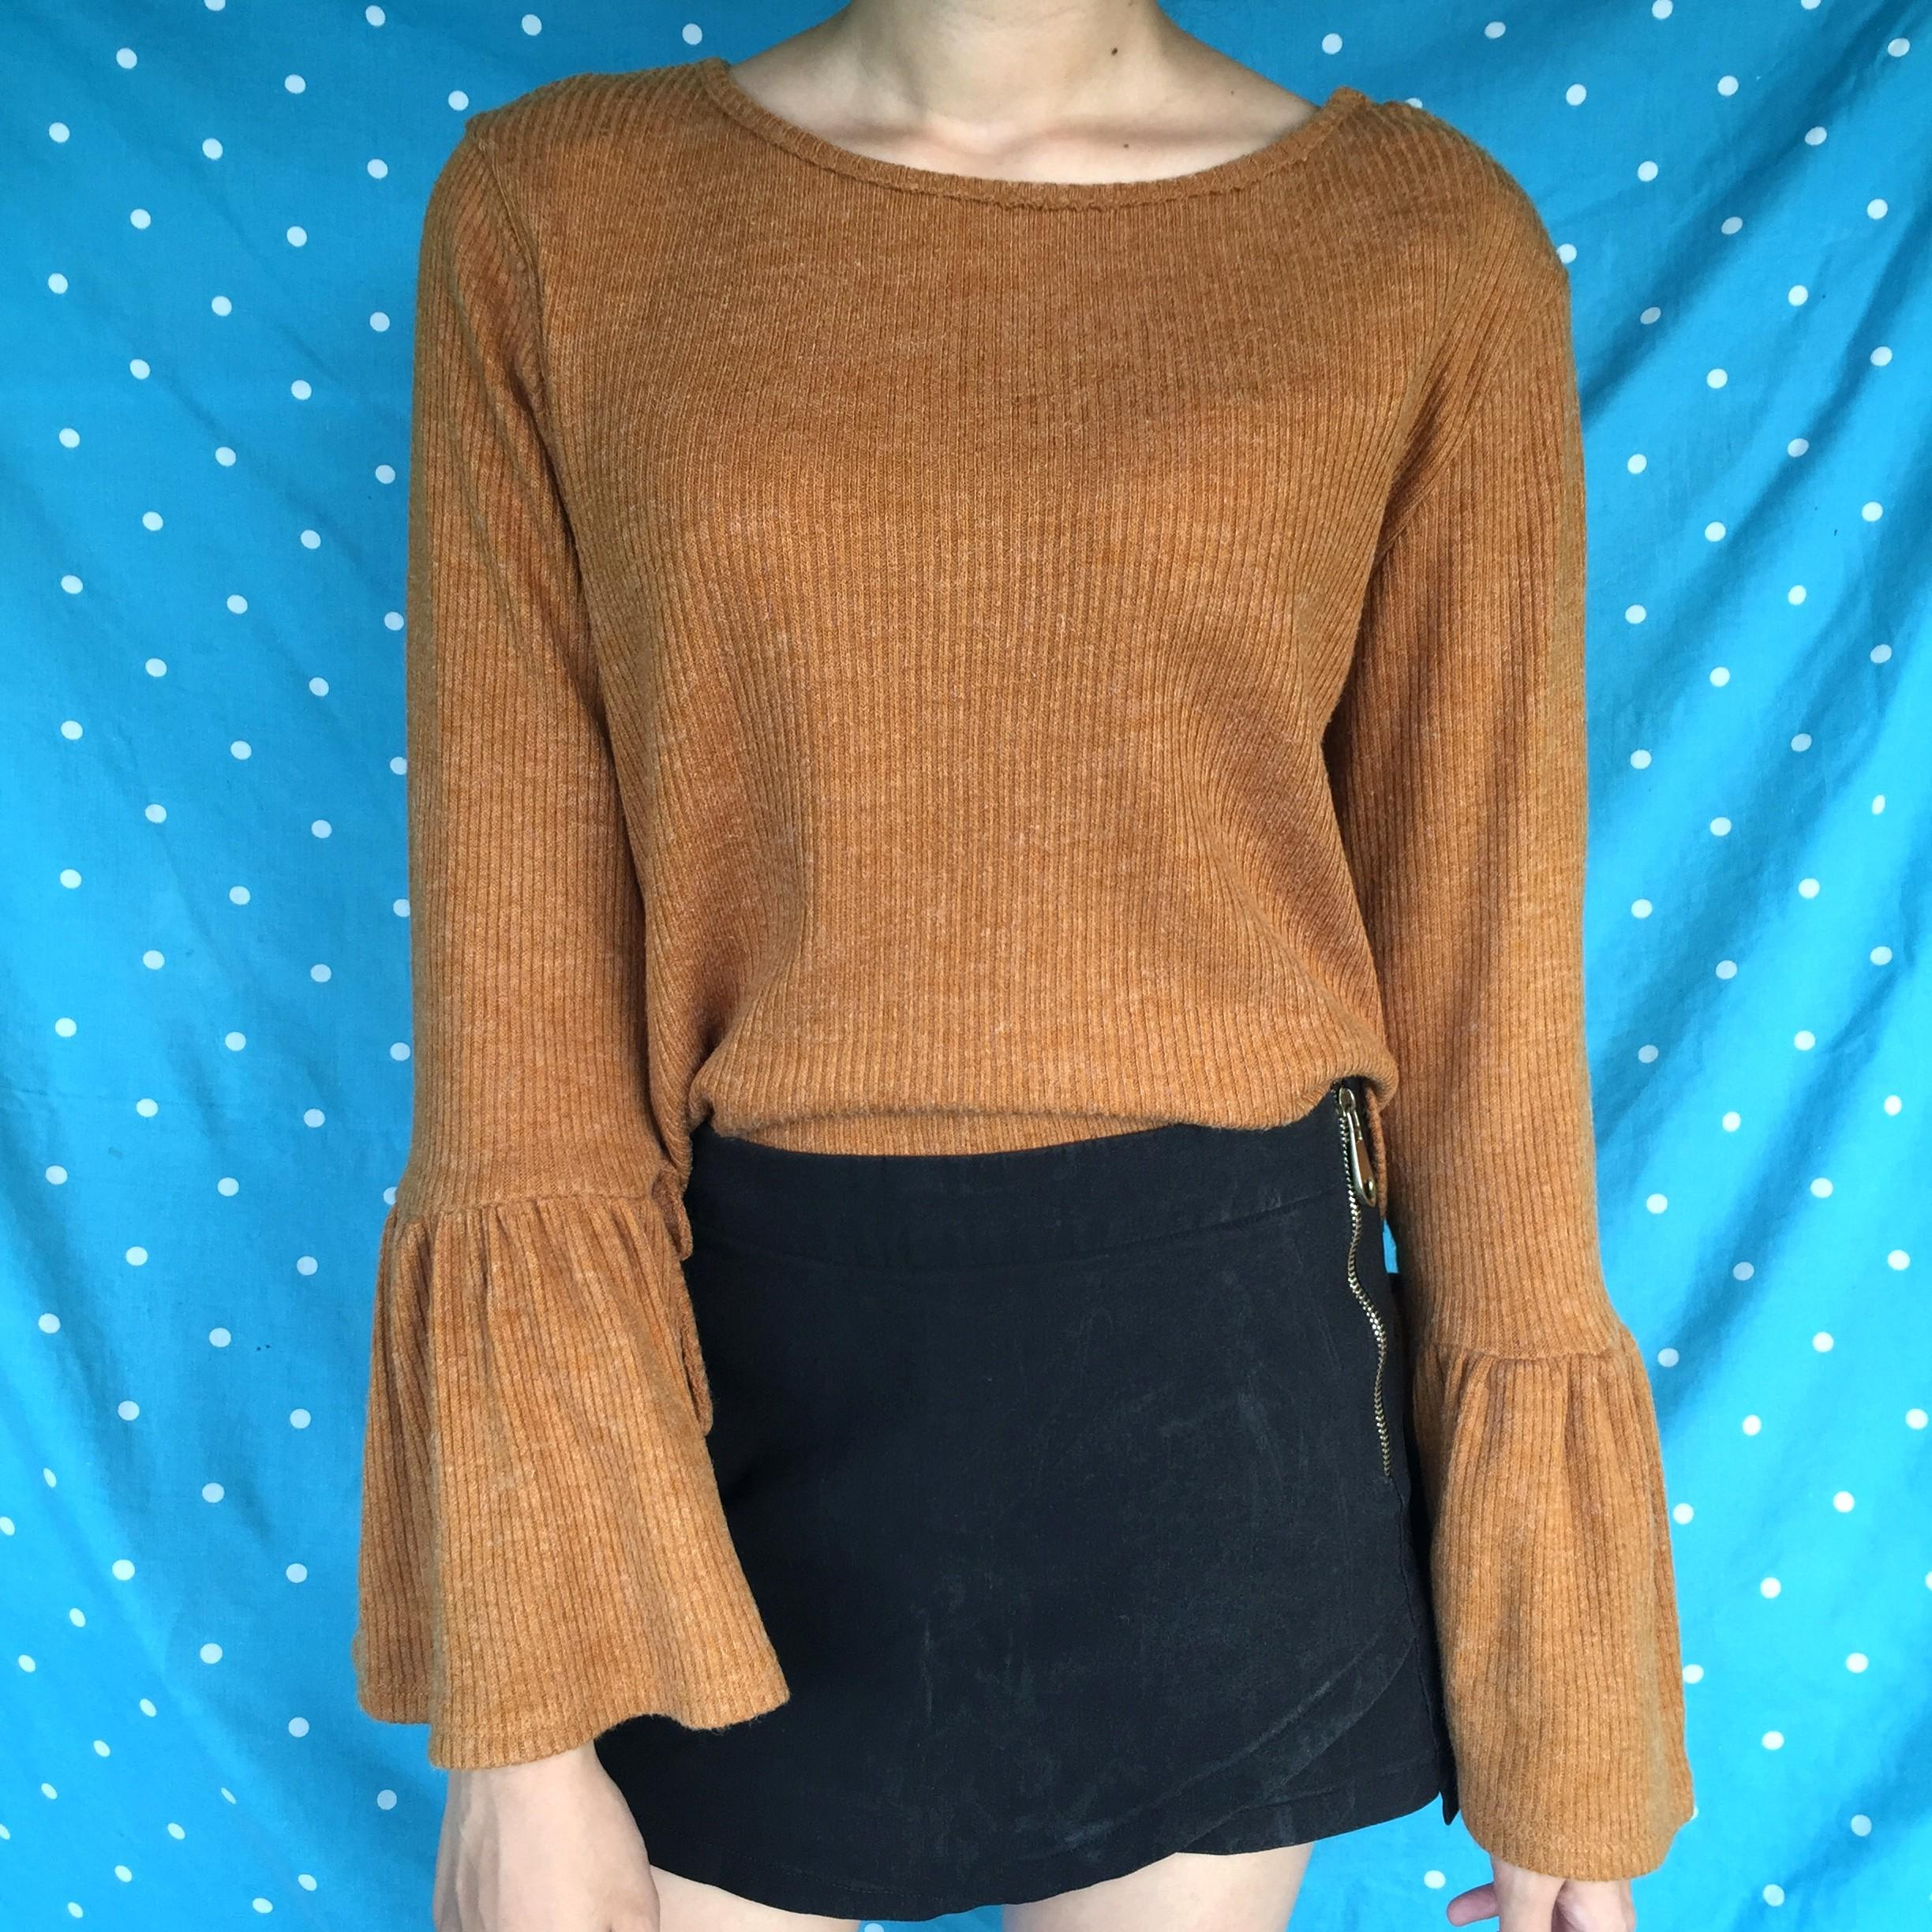 Cloth Inc Brown Knitted Crop Top